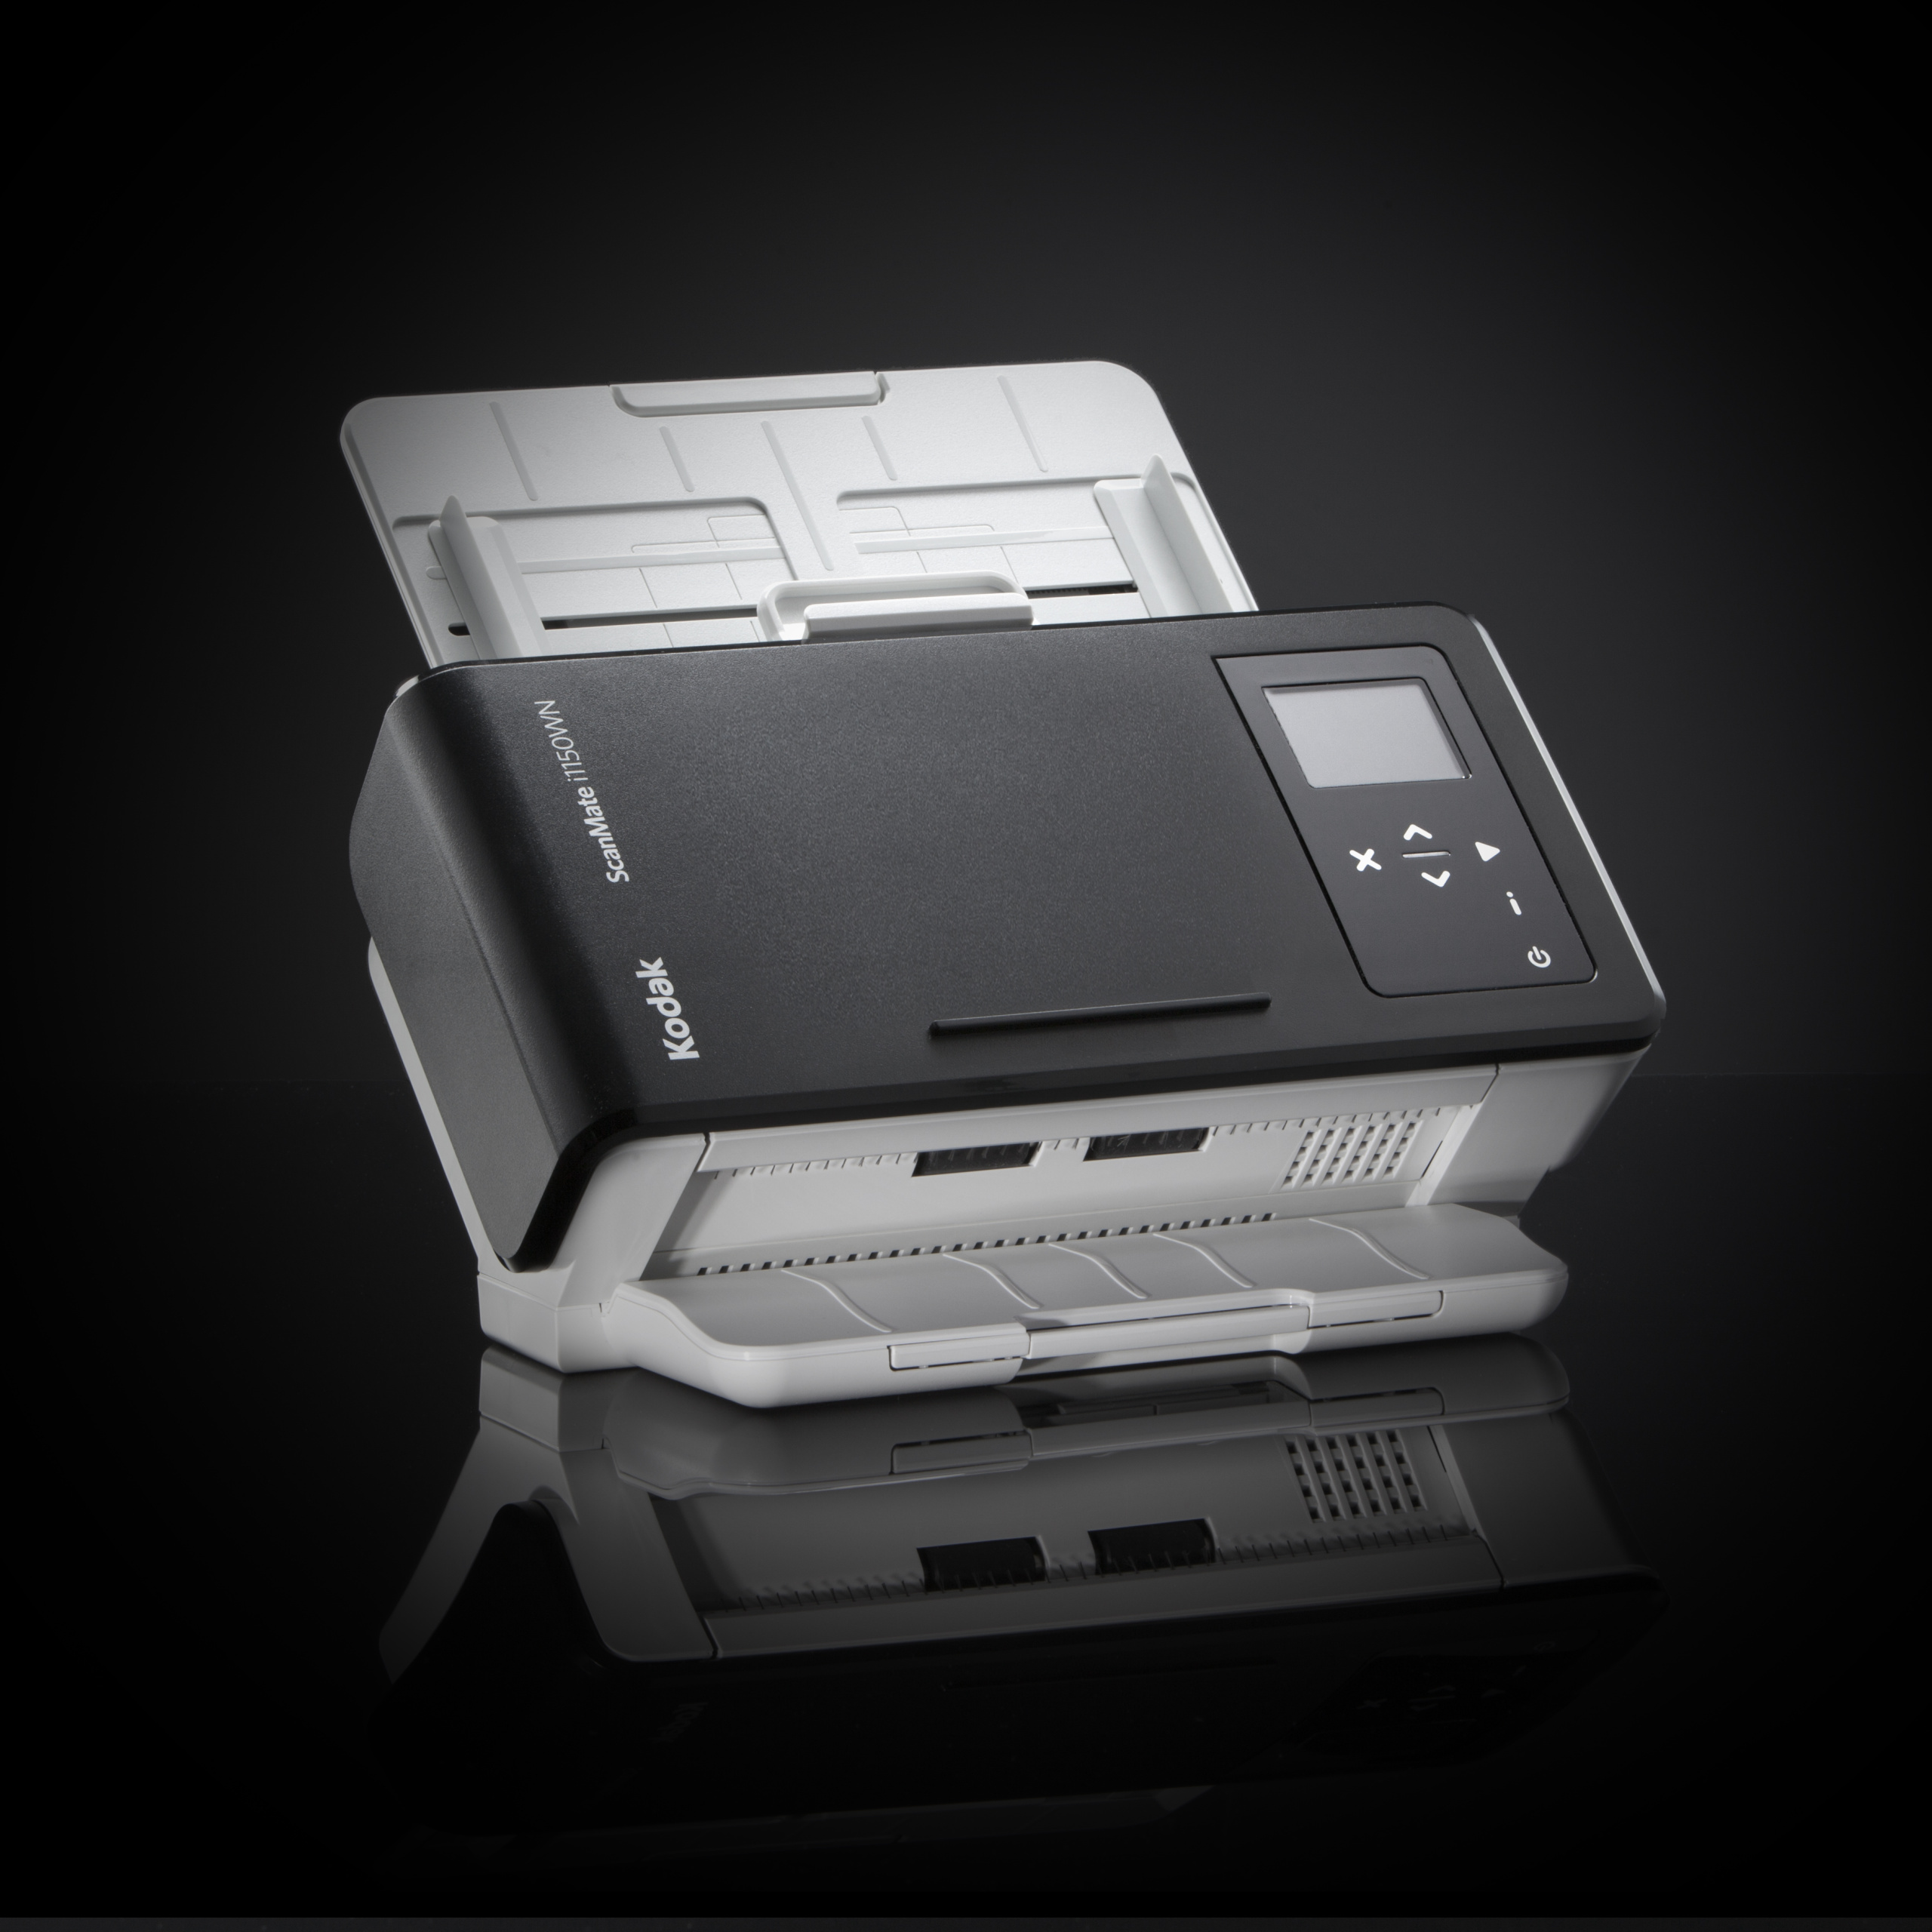 SCANMATE i1150WN Scanner support, drivers and manuals - Alaris